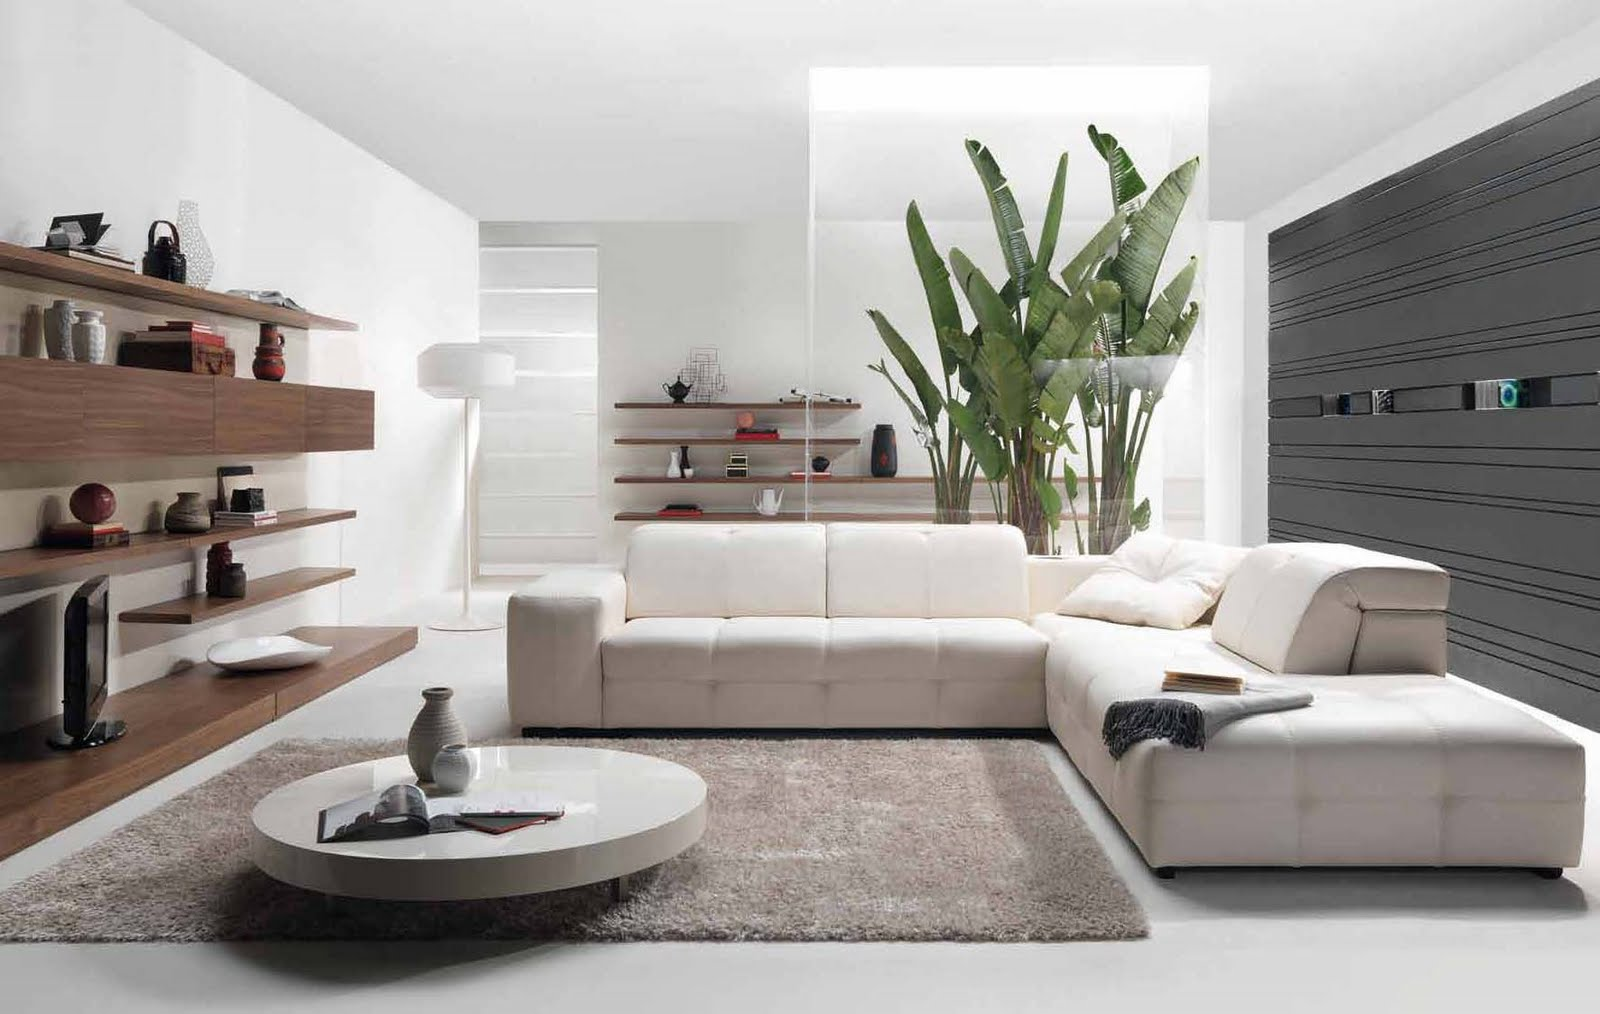 Future house design modern living room interior design for Home interior design living room